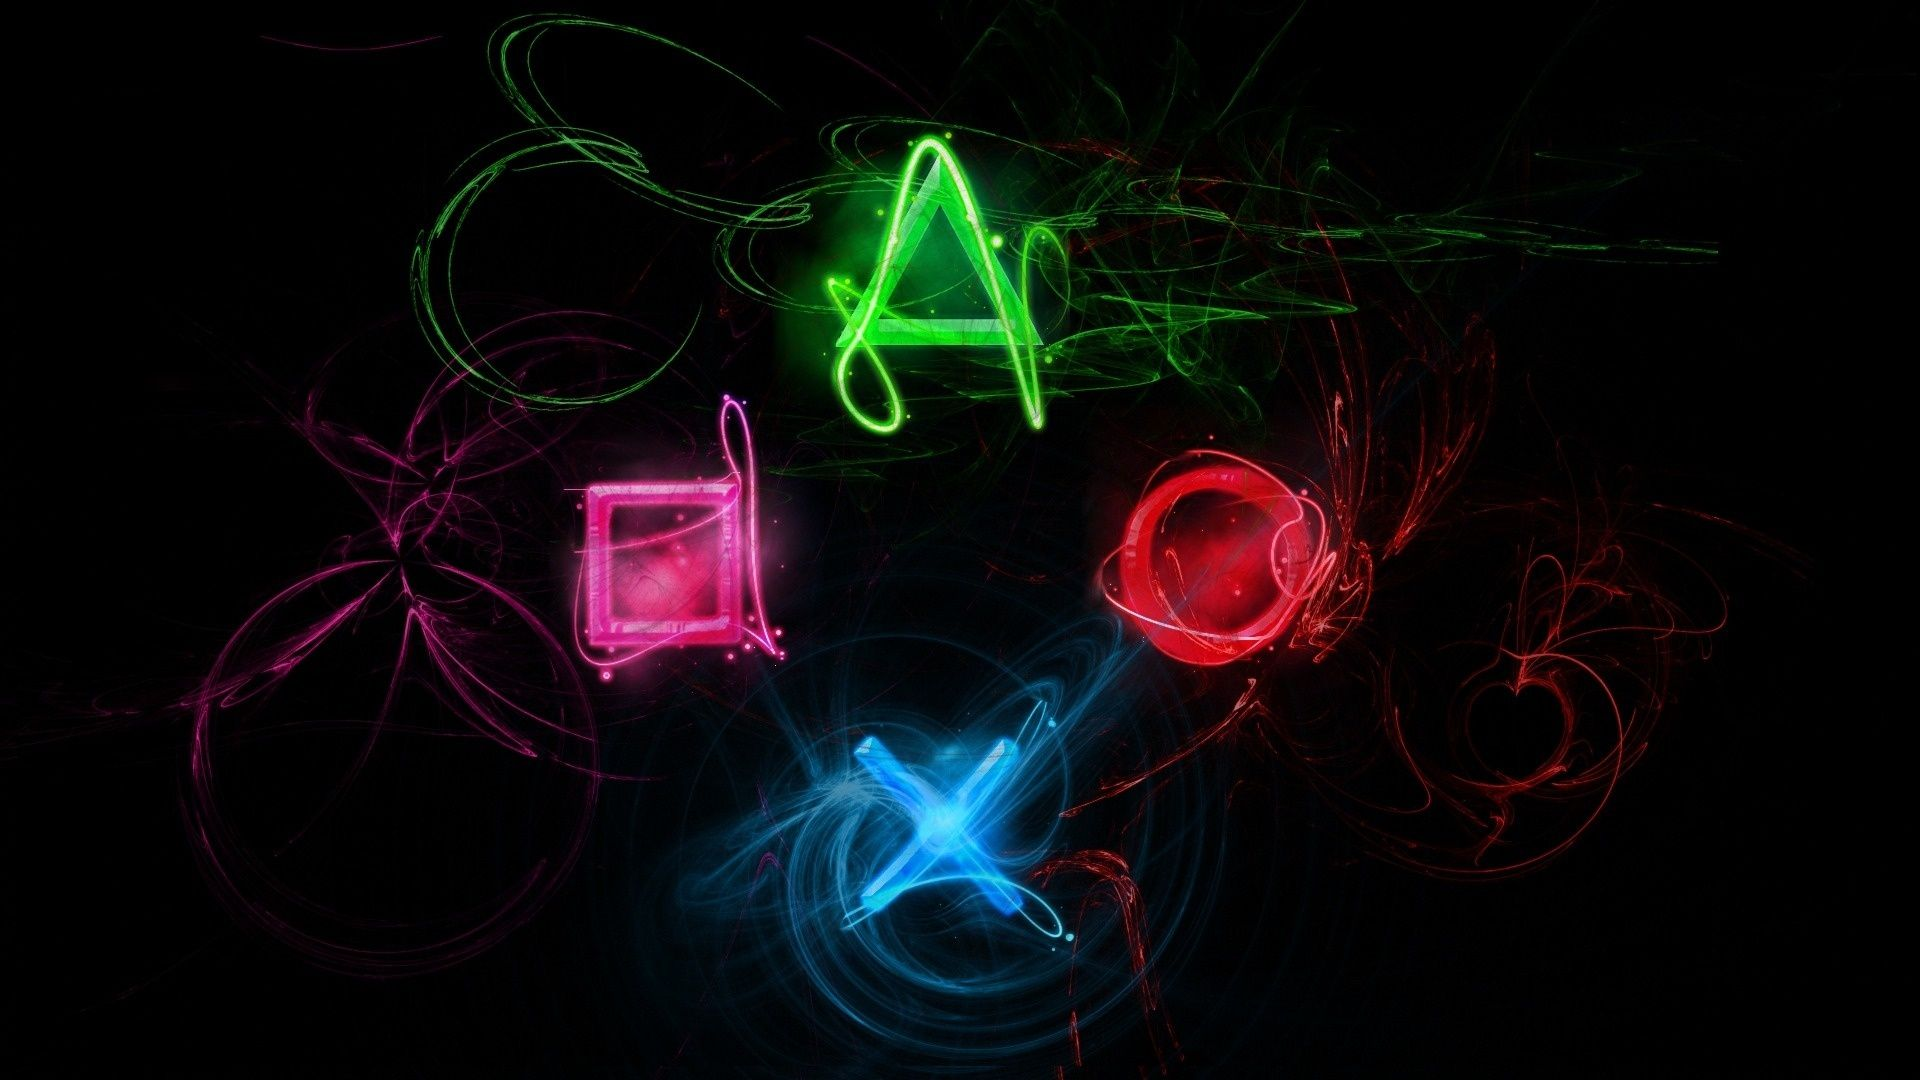 Ps3 Backgrounds Wallpapers Backgrounds Images Art Photos Gaming Wallpapers Playstation Logo 2048x1152 Wallpapers